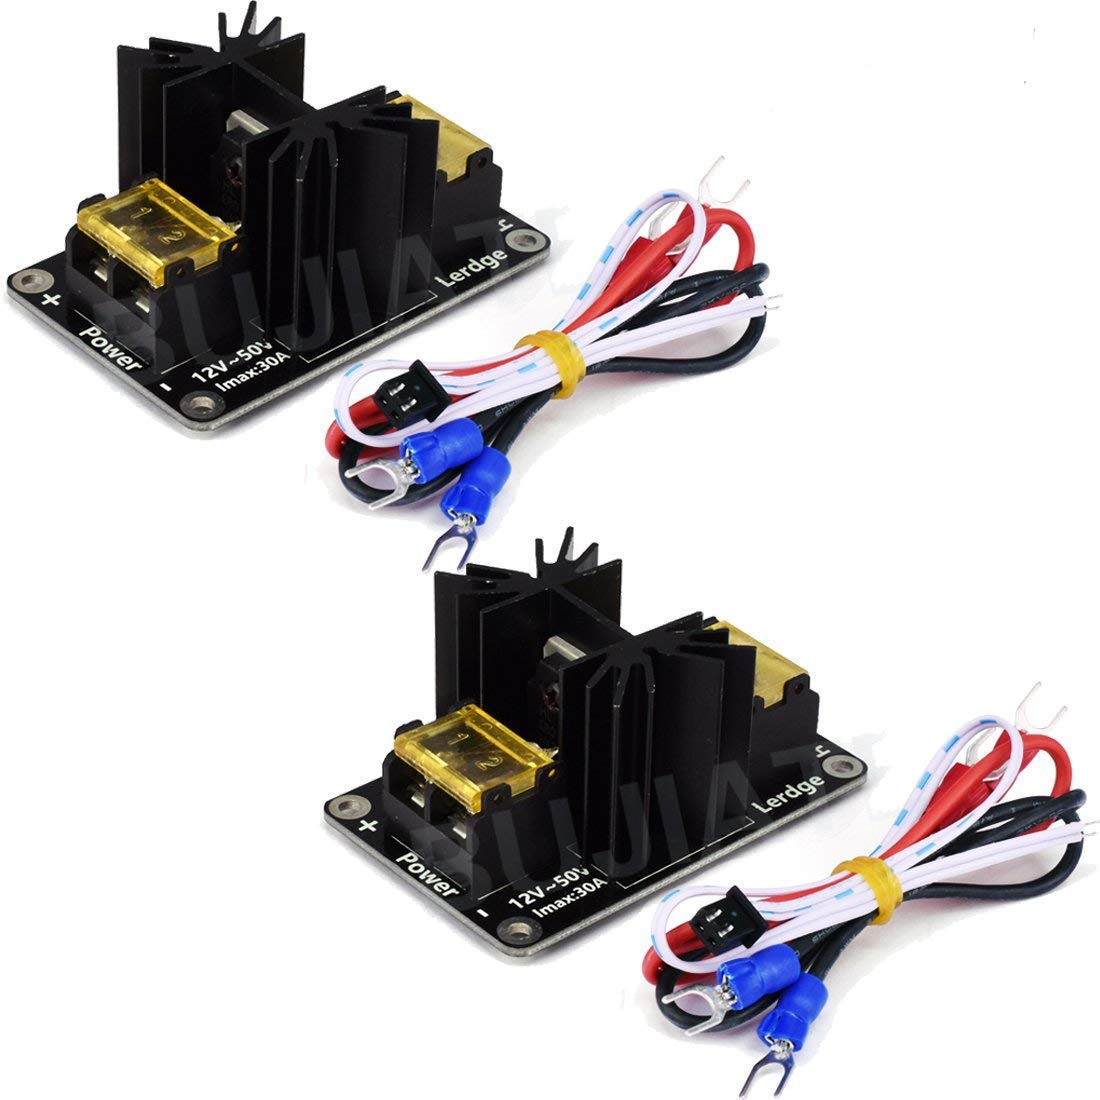 HiLetgo 2pcs 3D Printer 30A Big Current Mos Tube Heat Bed Power ...